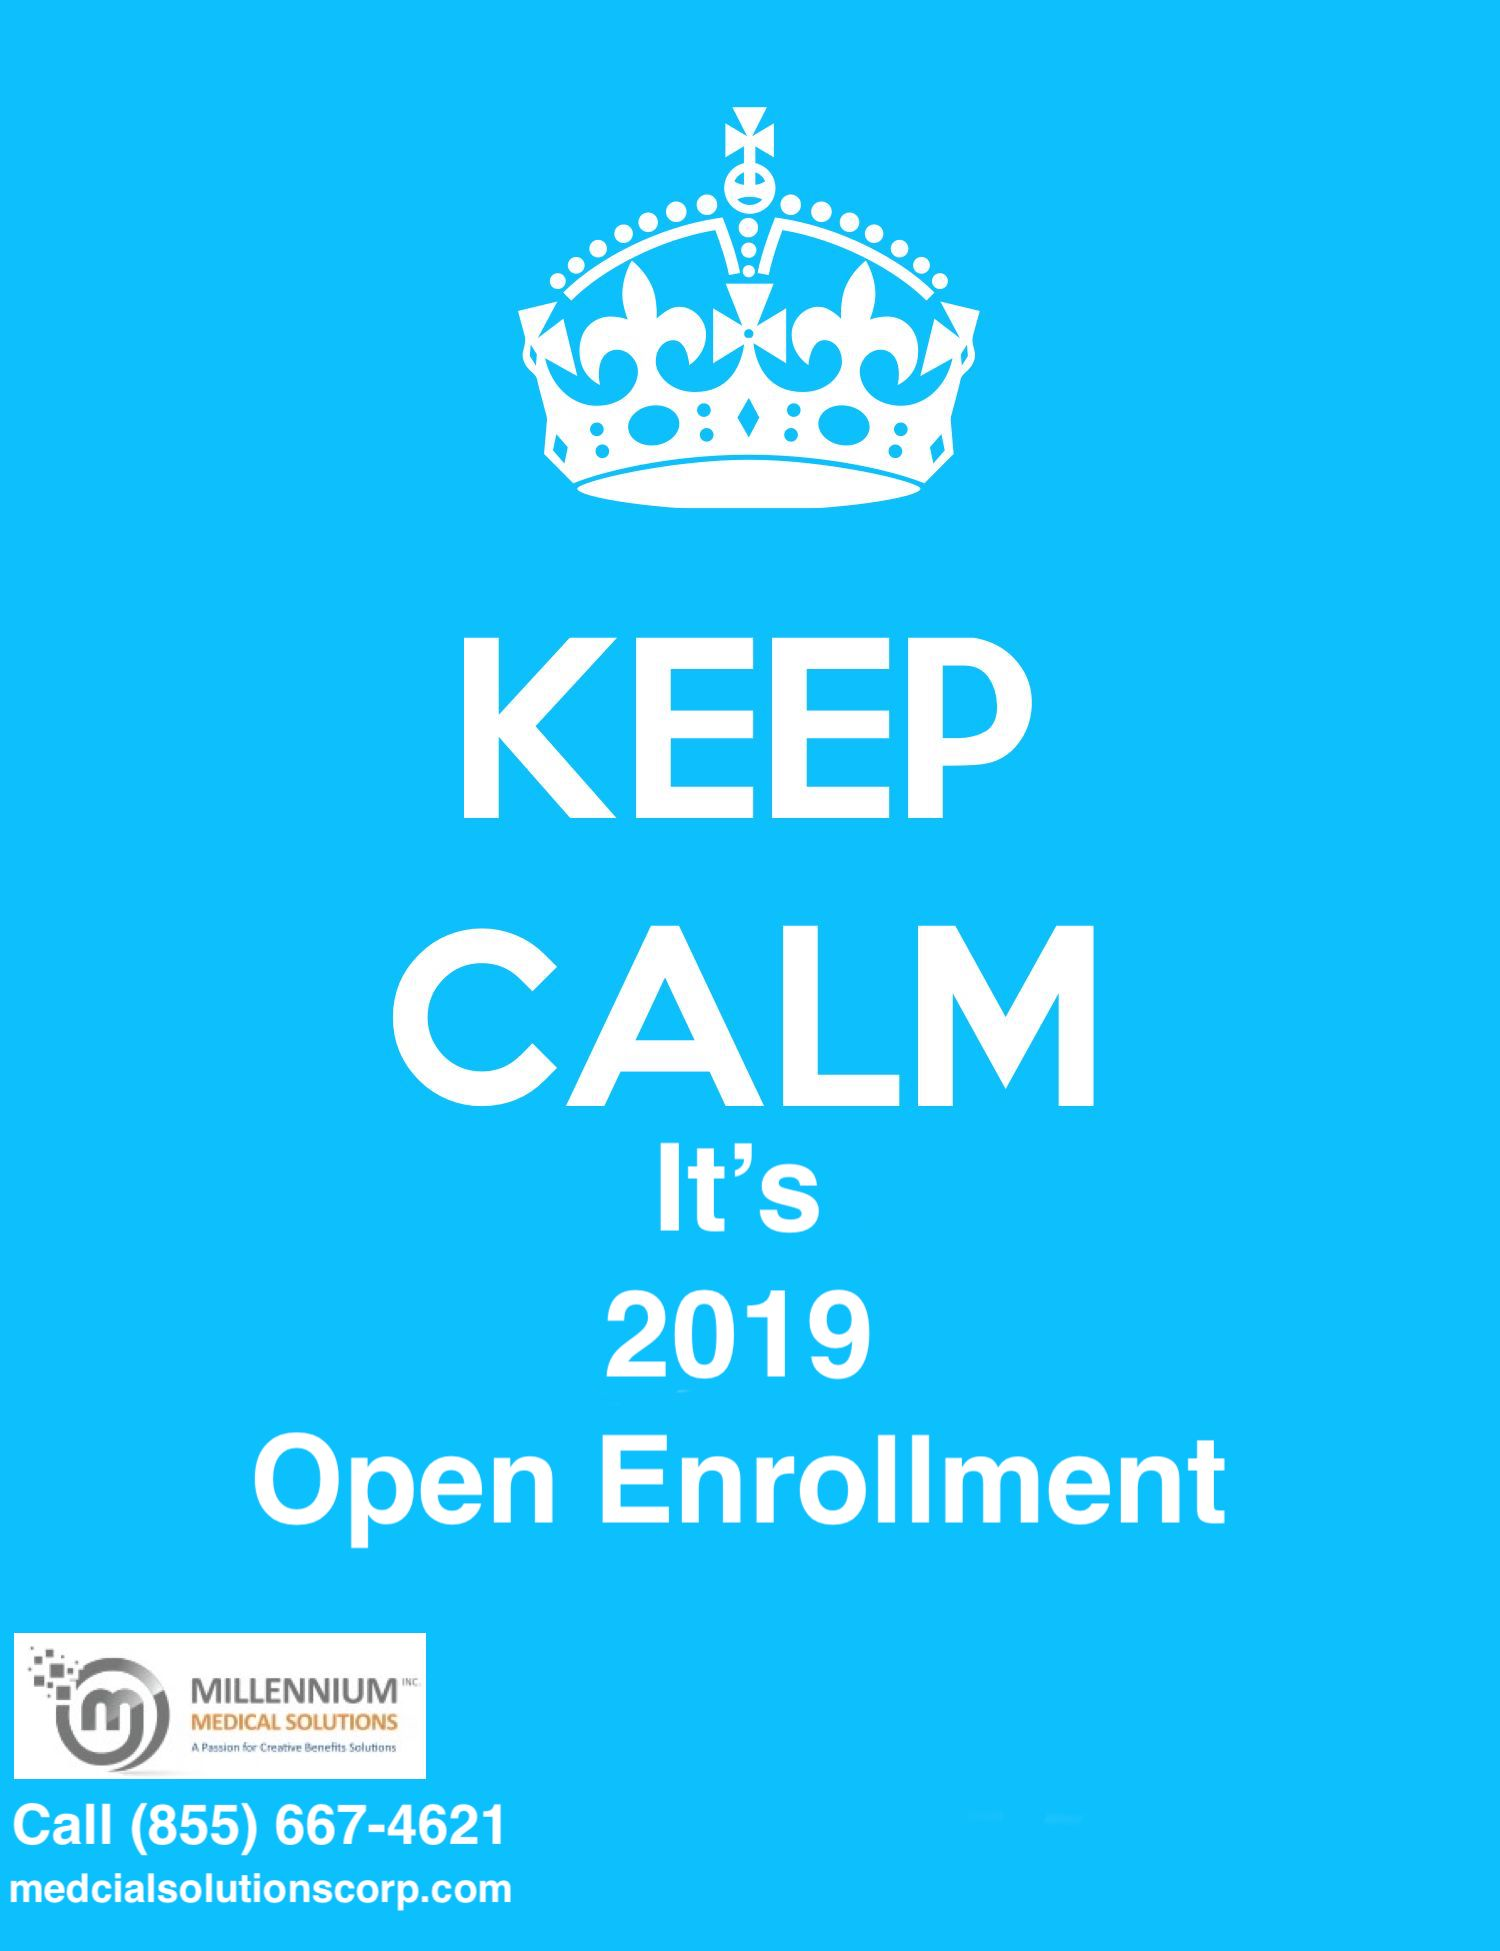 2019 OPen Enrollment